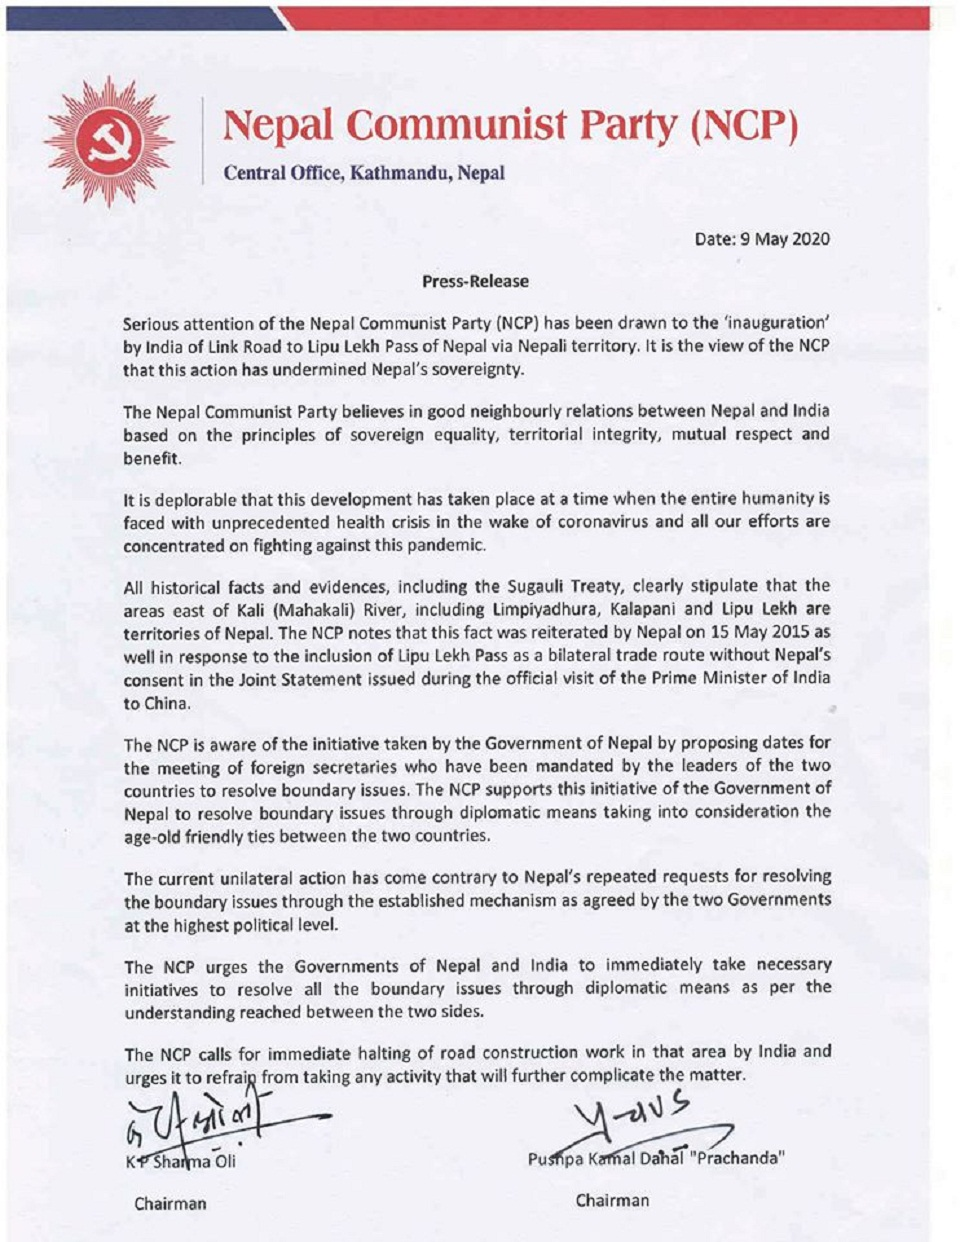 Ruling NCP deploresIndia's unilateral road construction through Nepali territory Lipulekh (with statement)